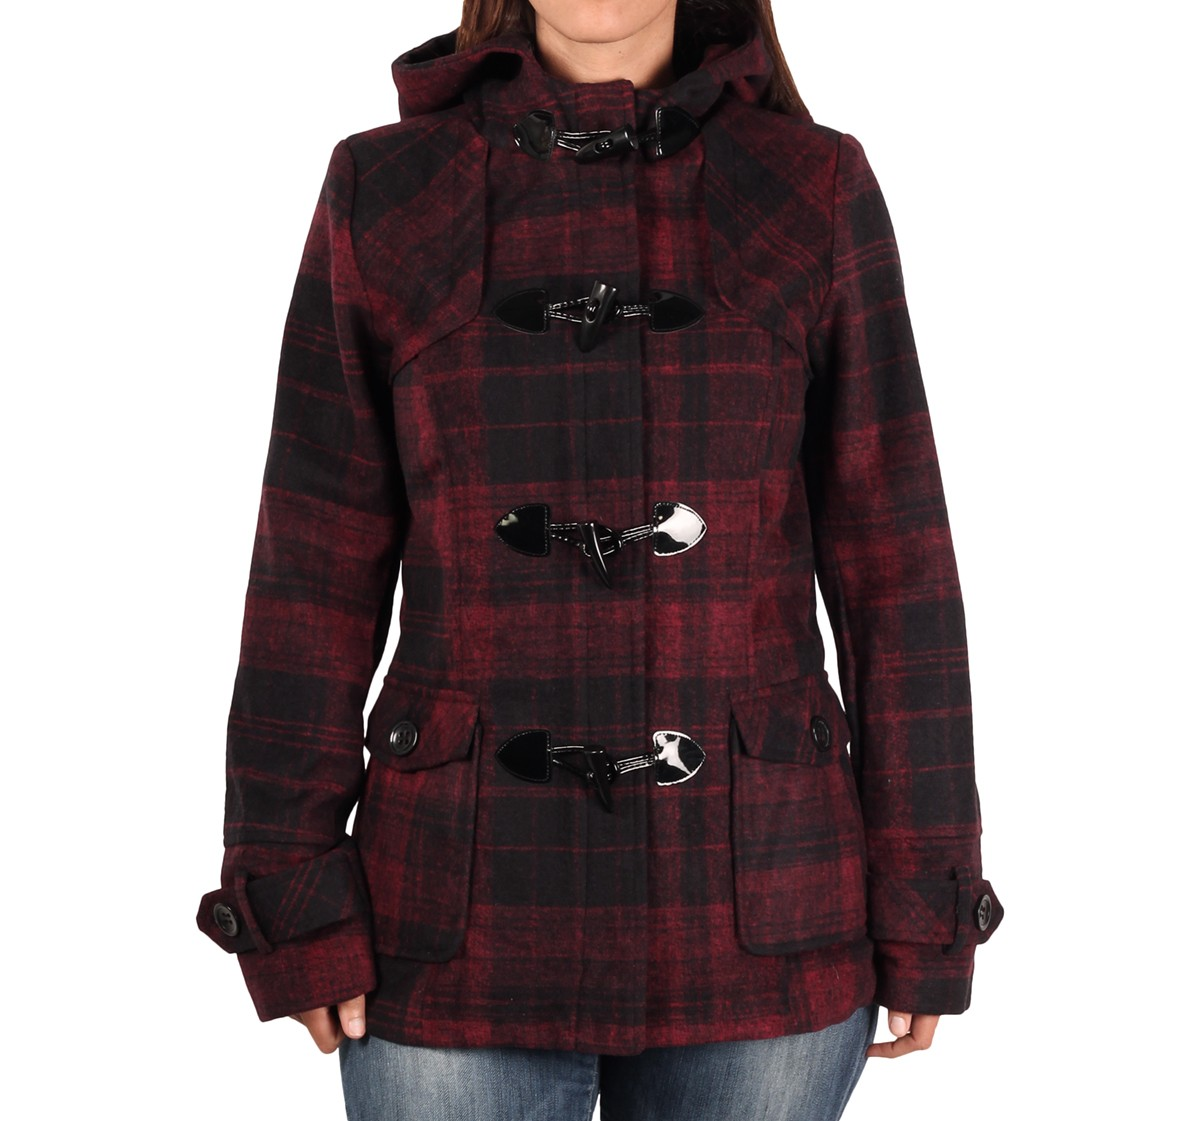 Clearance Berry Plaid Hooded Wool Blend Coat with Satin Lining Jacket Sm - XL